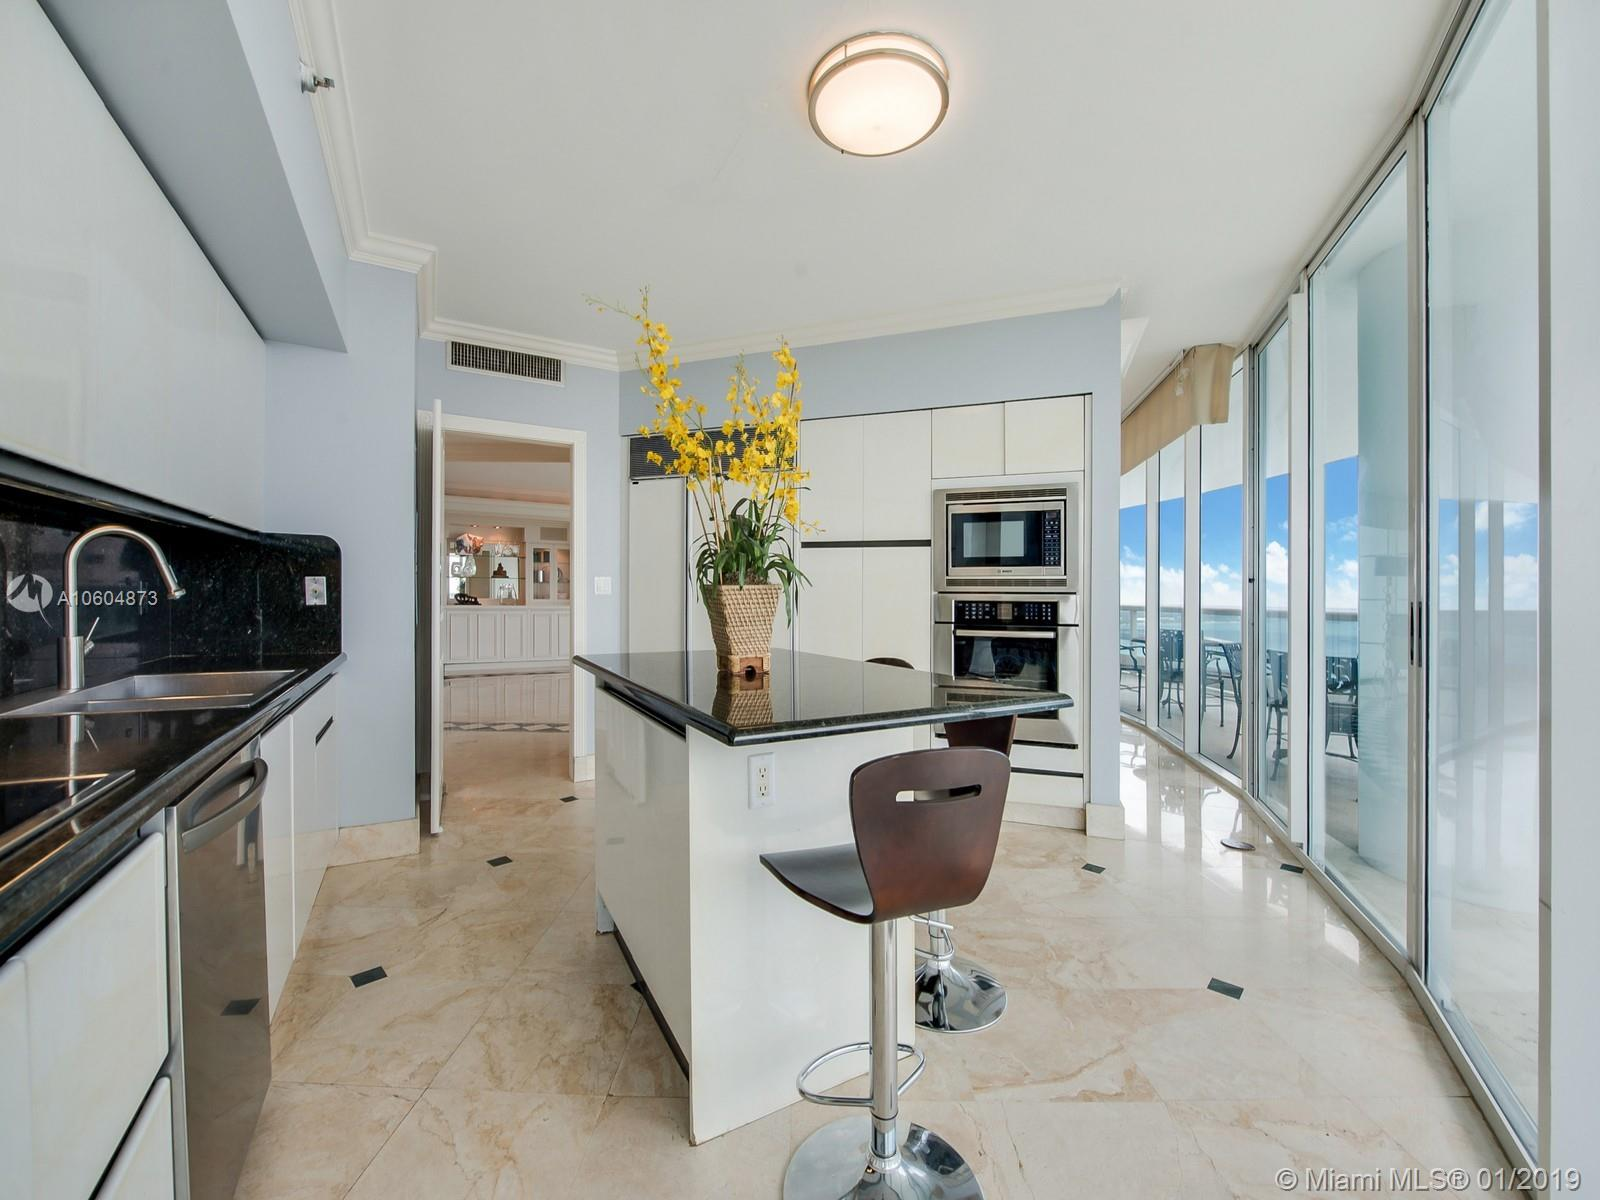 2127 Brickell Avenue, Miami, FL 33129, Bristol Tower Condominium #3102, Brickell, Miami A10604873 image #7